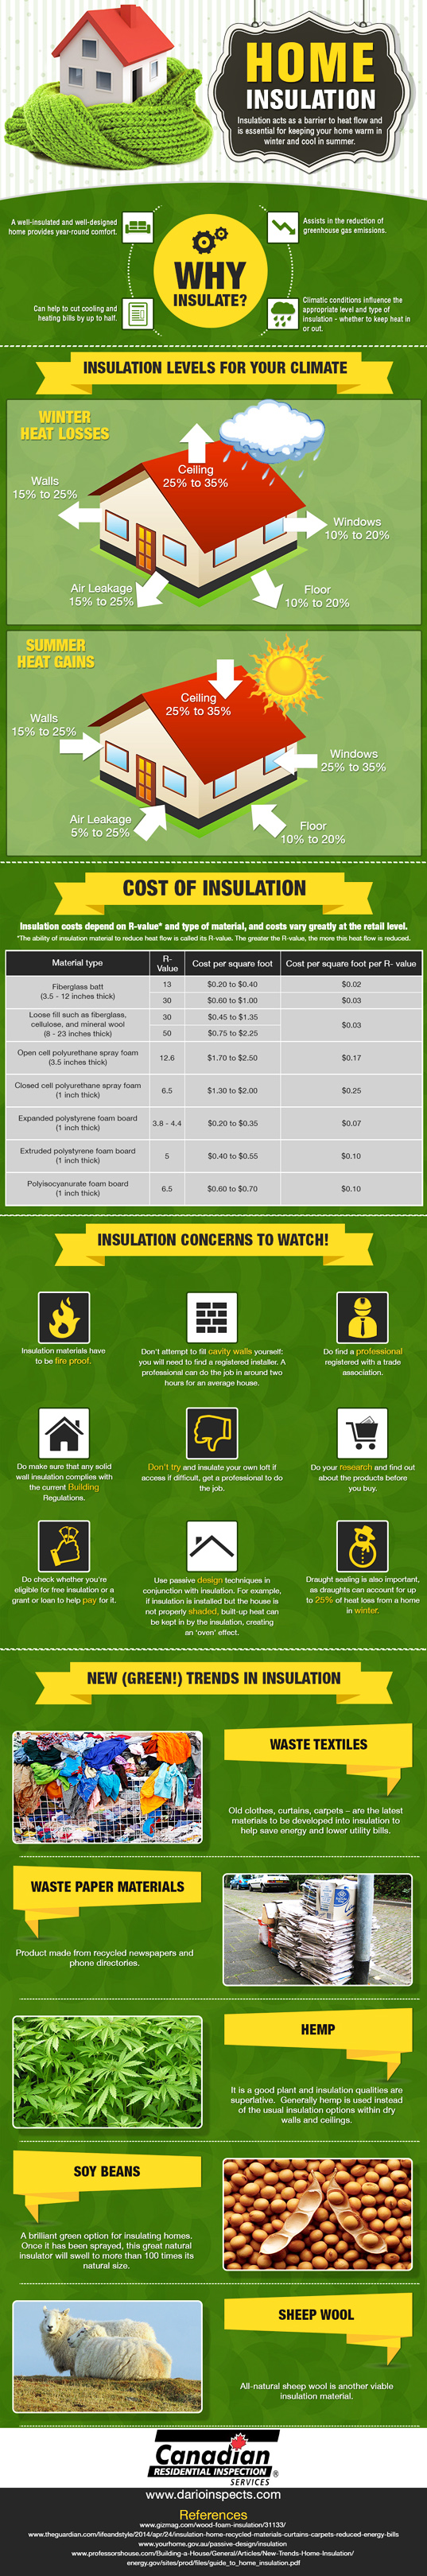 Why home insulation is important infographic best for Insulate your home for free